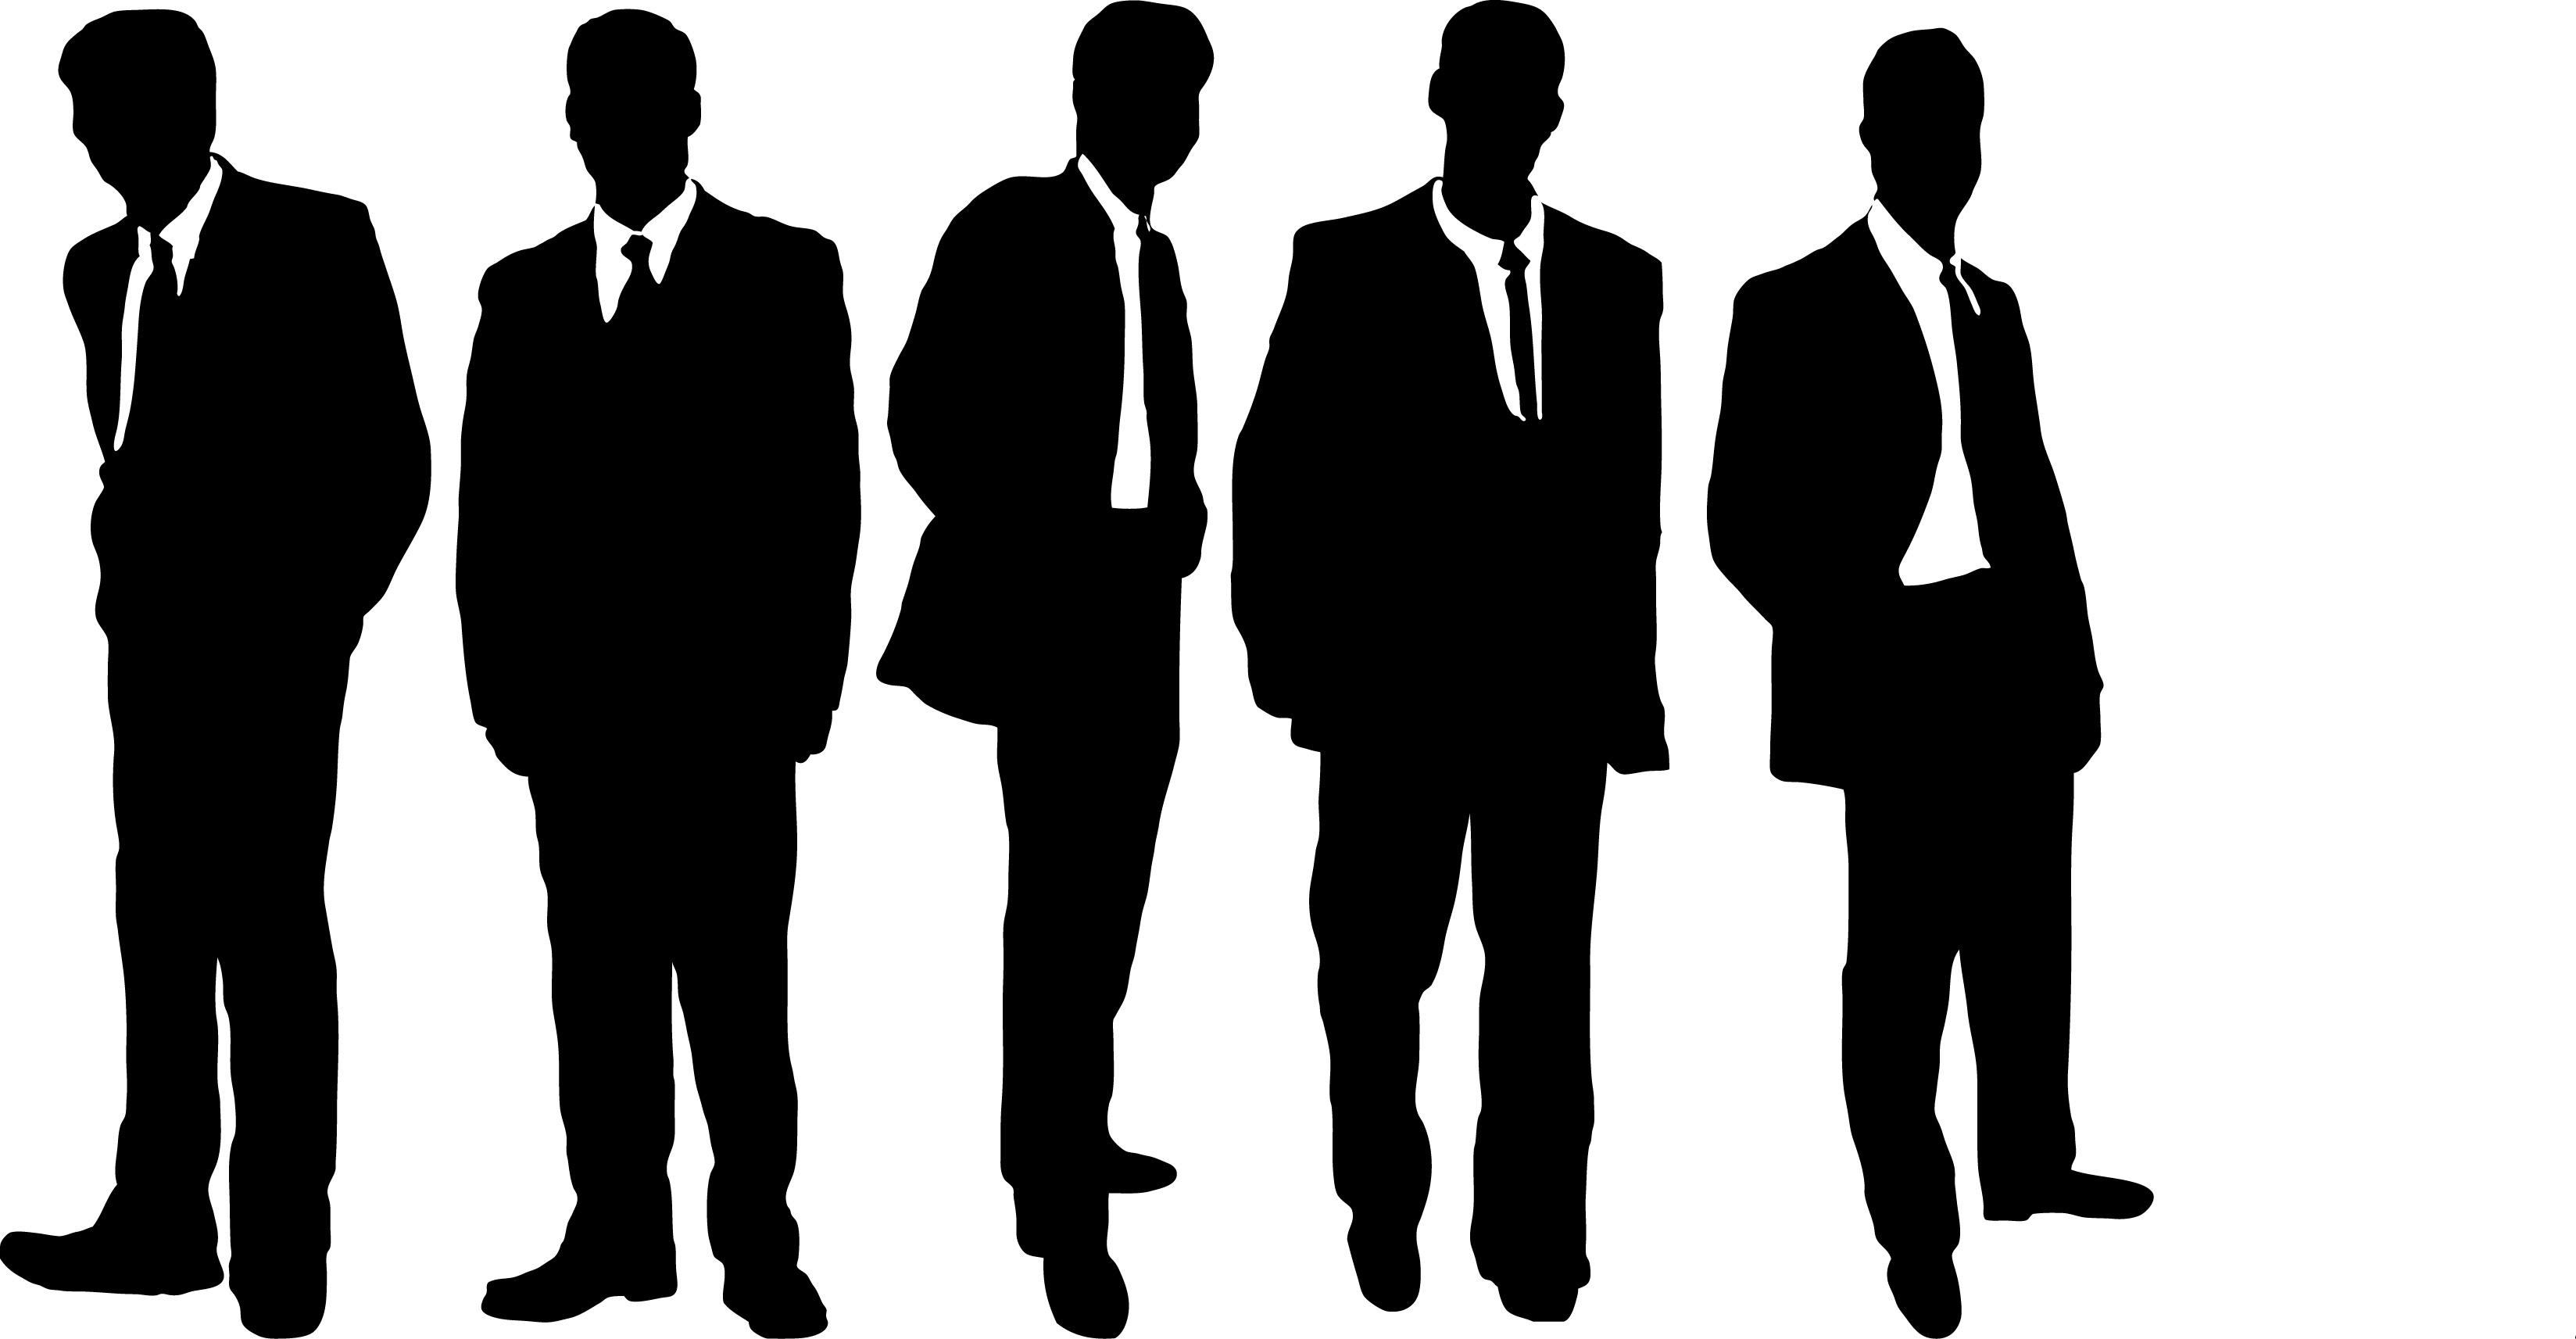 Clipart People Transparent Background.